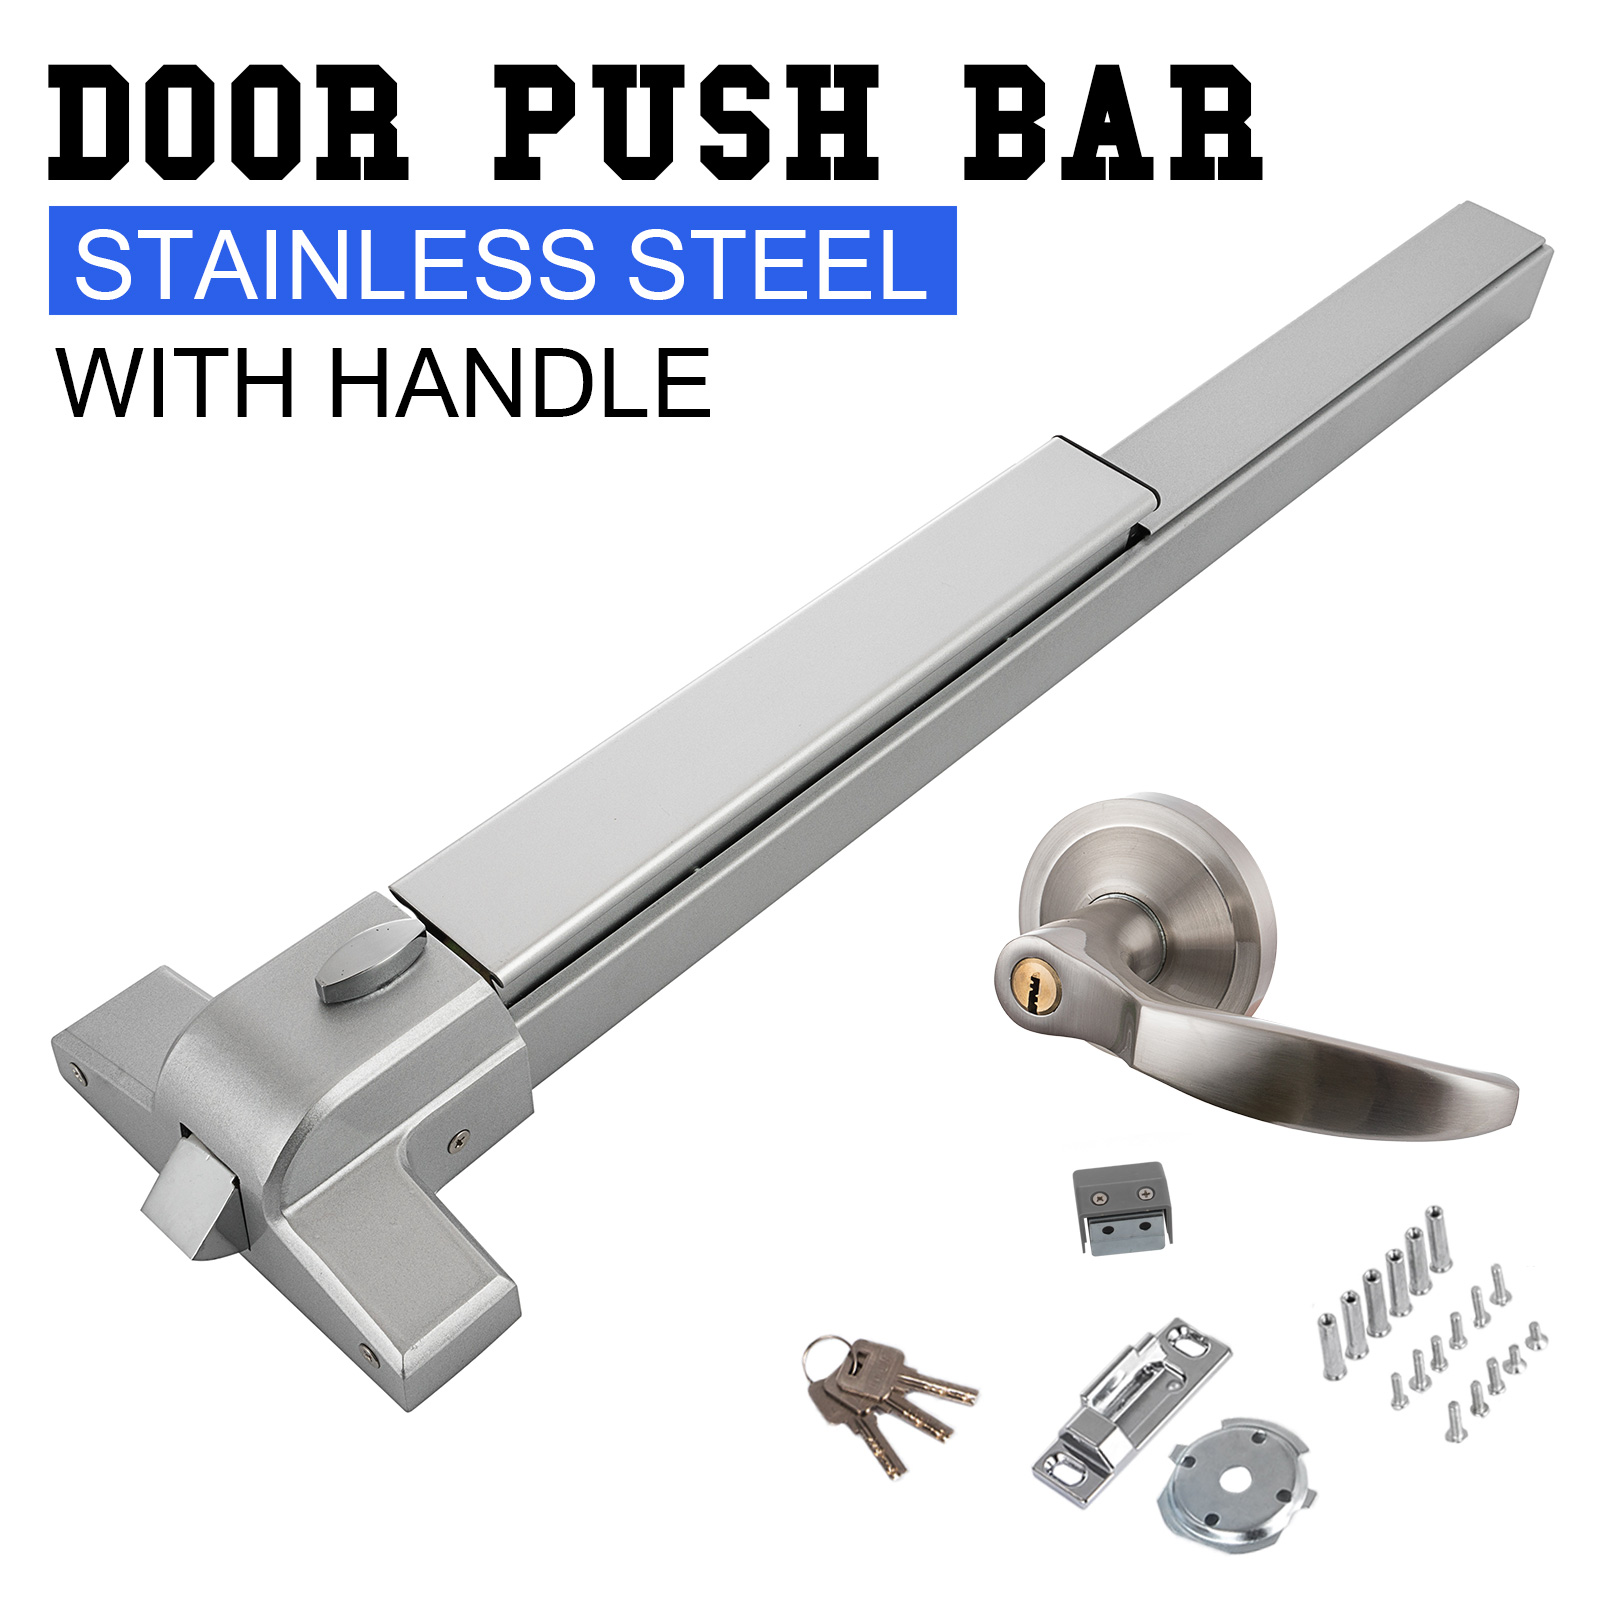 Door Push Bar Exit Panic Device lock Emergency Hardware Latches Commercial Grade